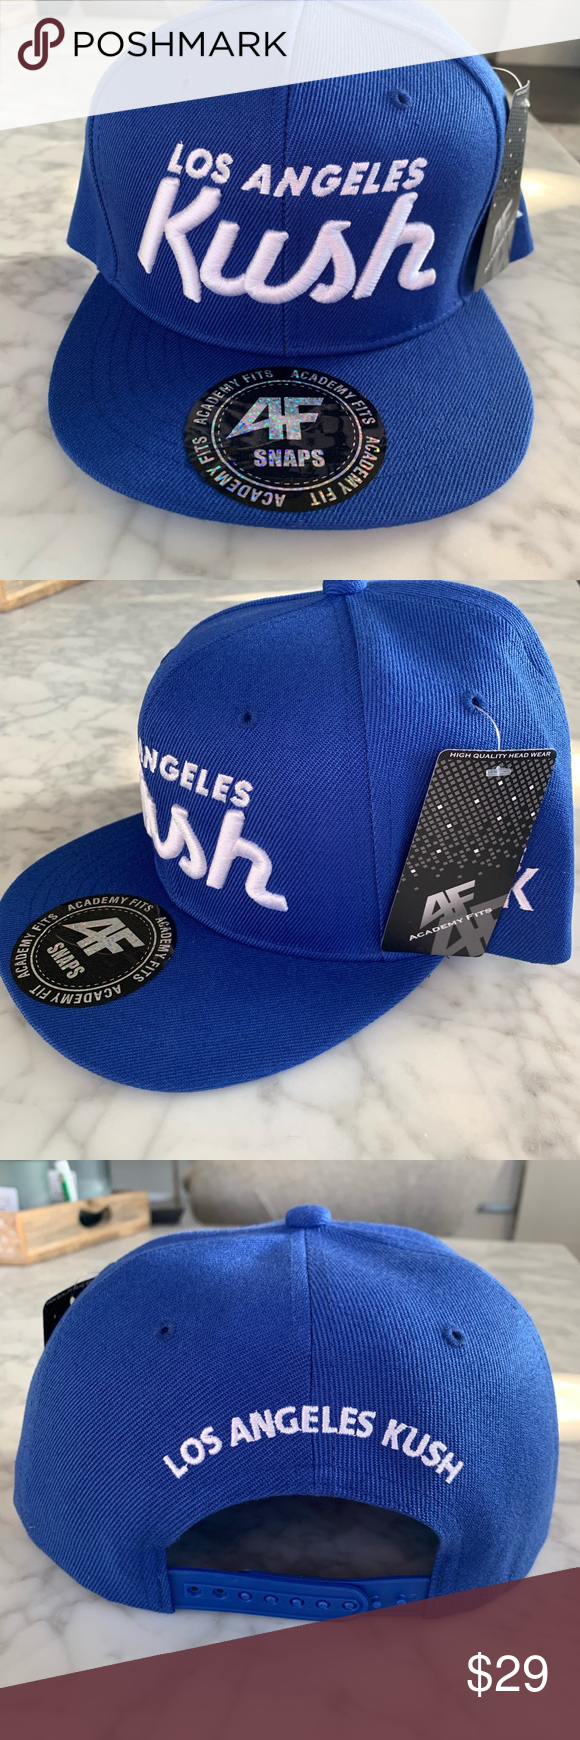 Los Angeles Kush Limited Edition Snap Back Hat Snap Backs Fitted Caps Fashion Trends